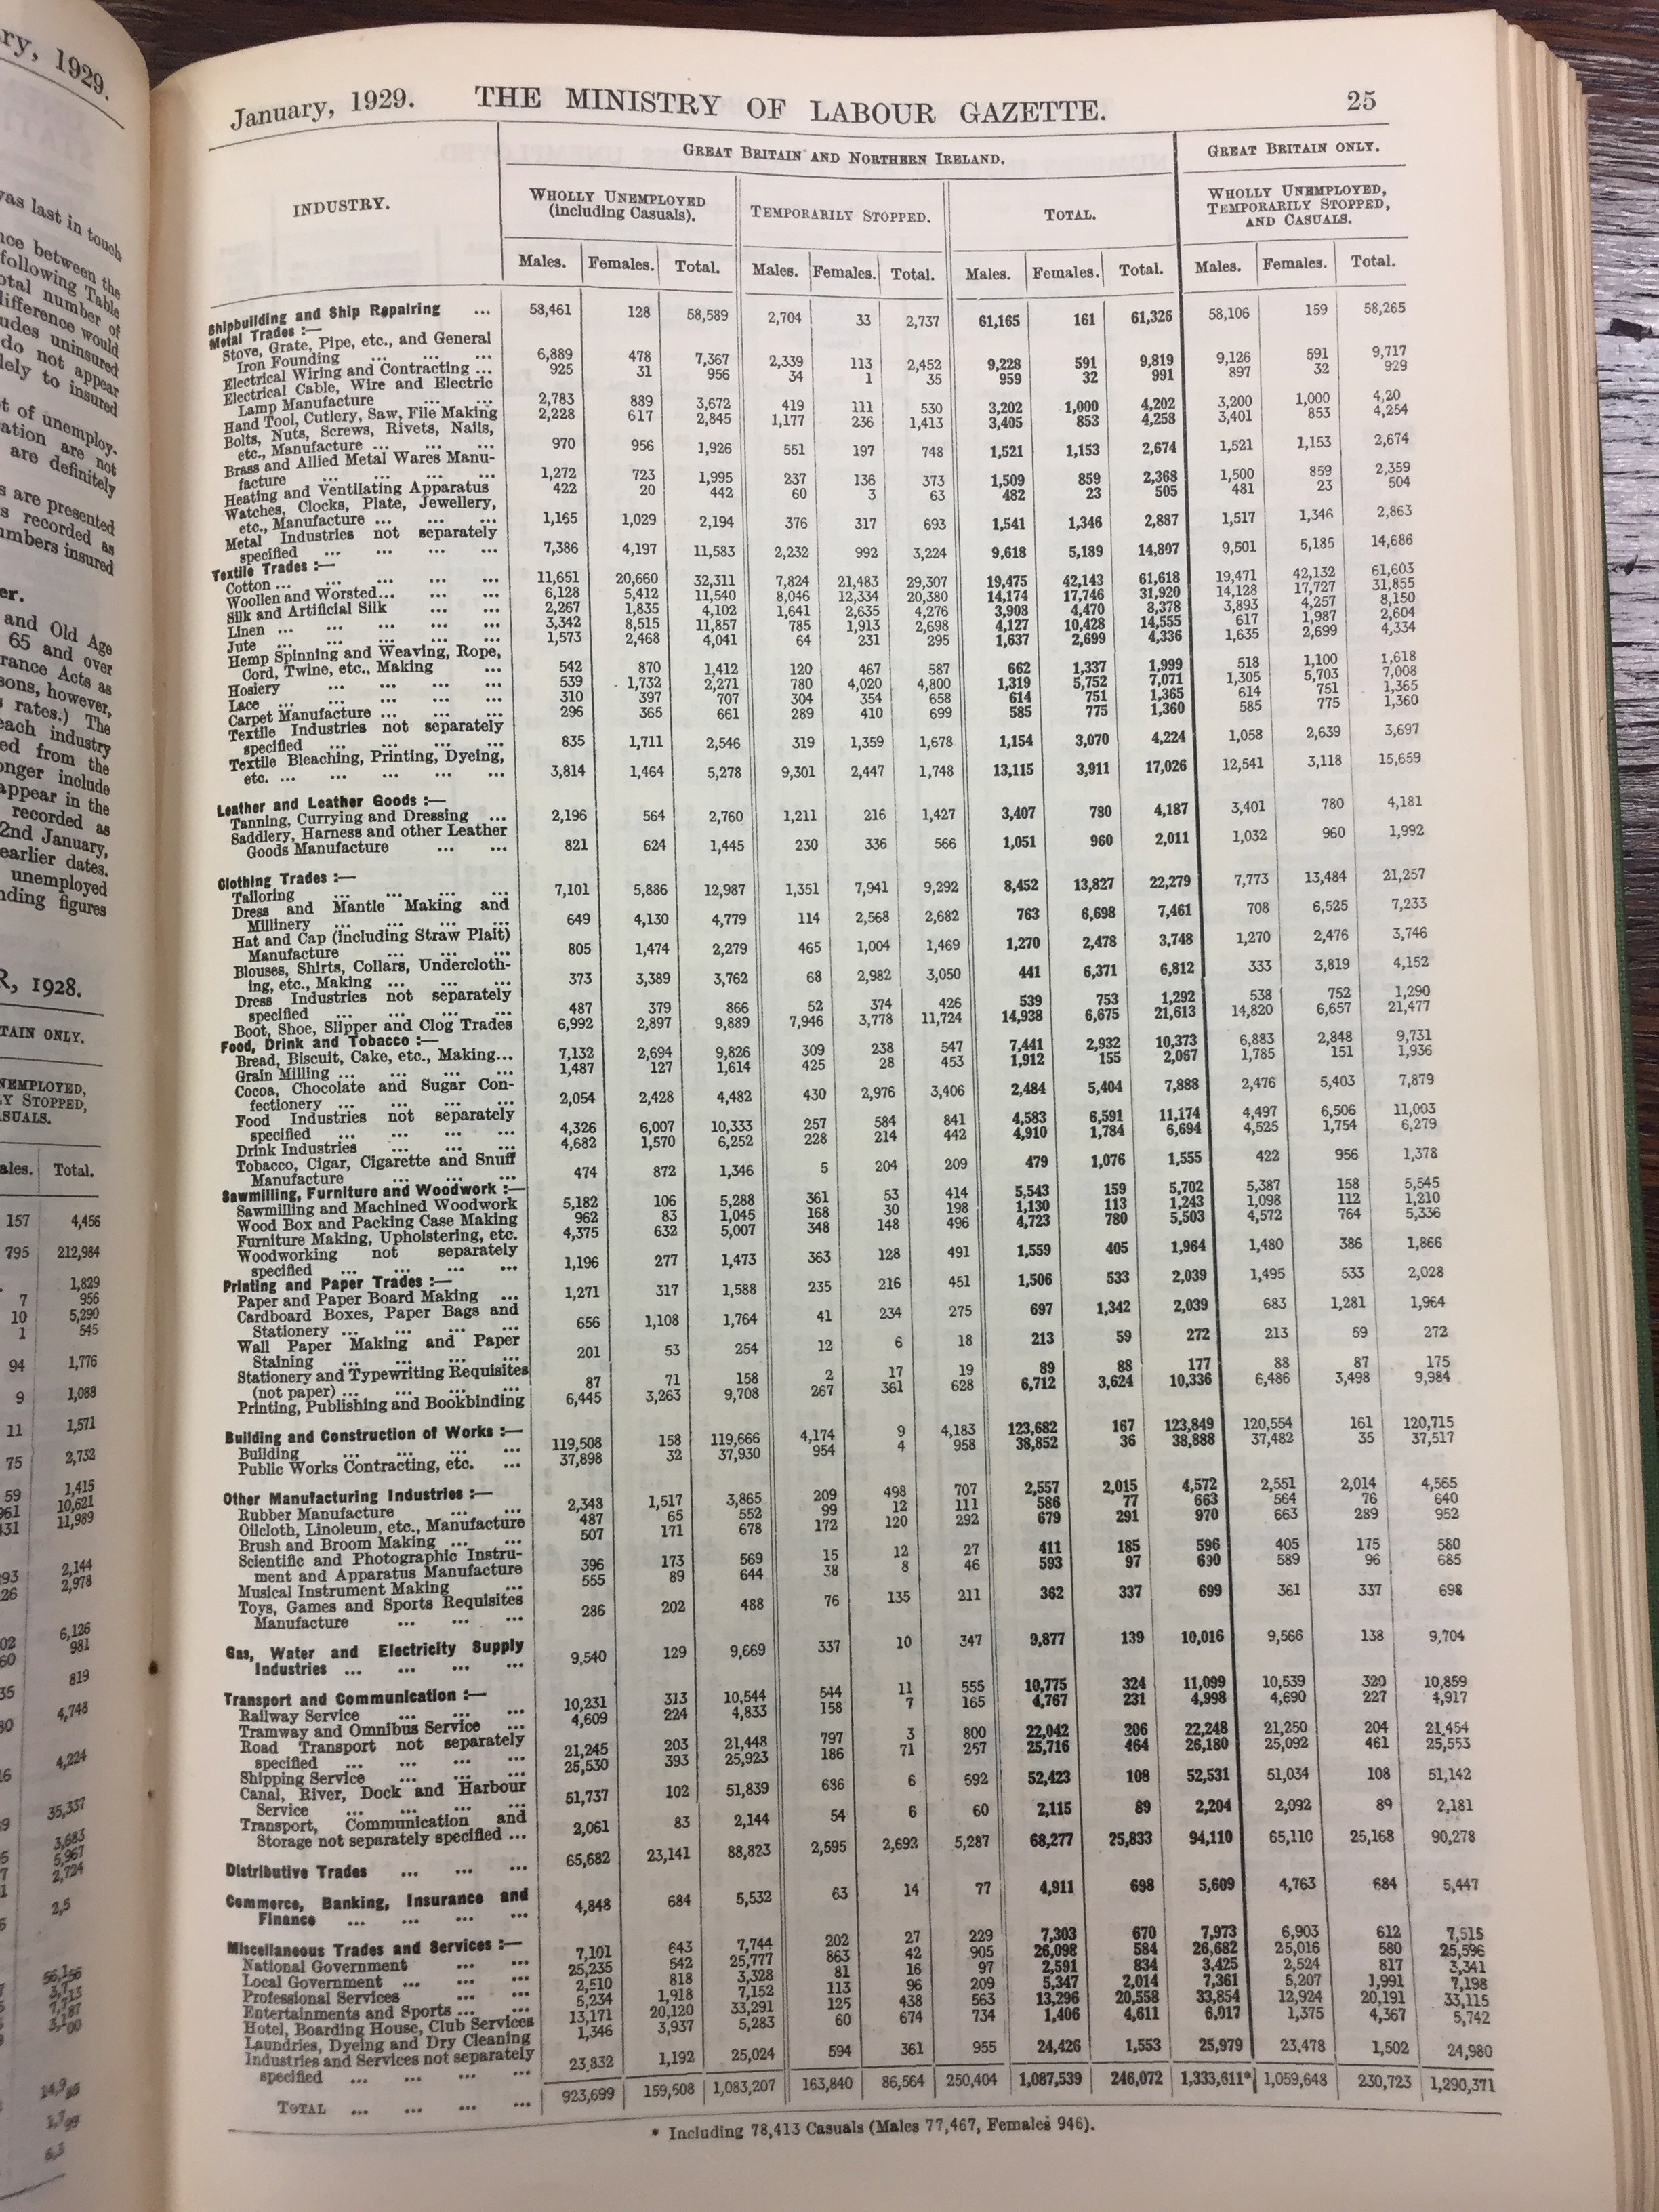 Original data in the book